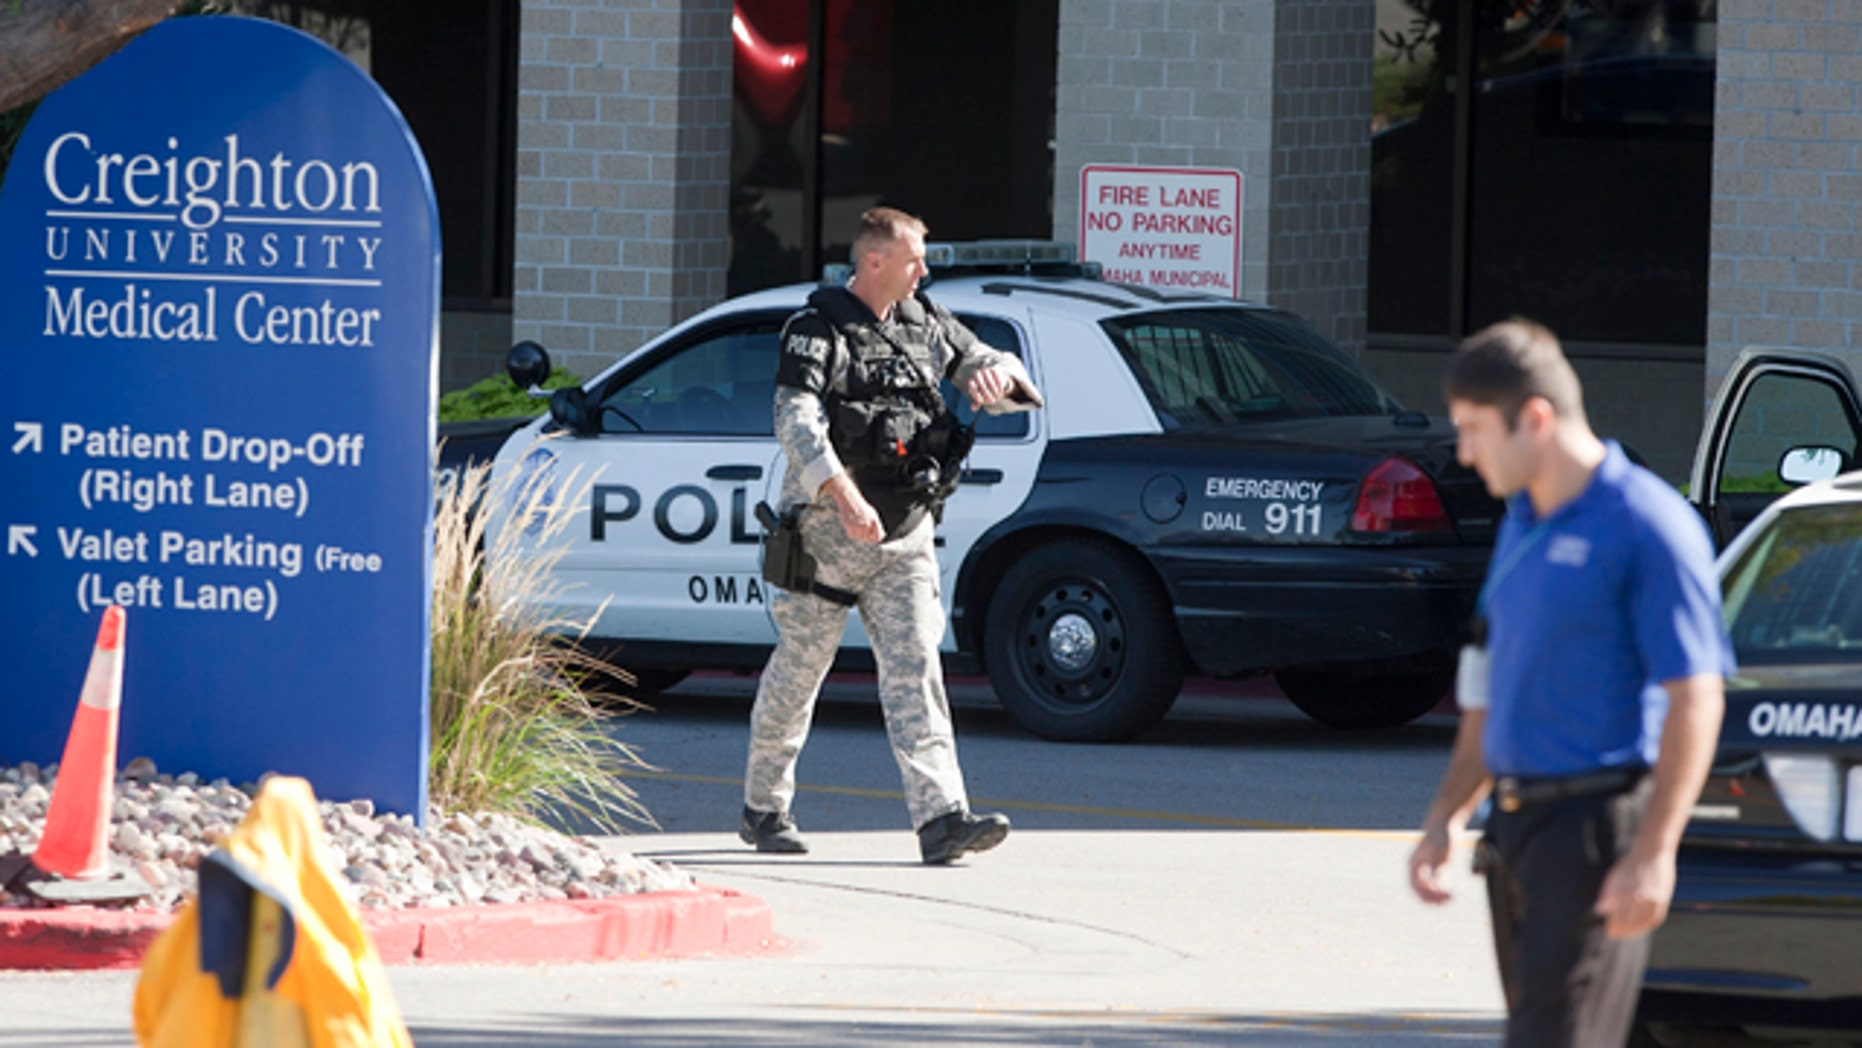 Sept. 29: A police SWAT team member walks out of the Creighton University medical center in Omaha, Neb.